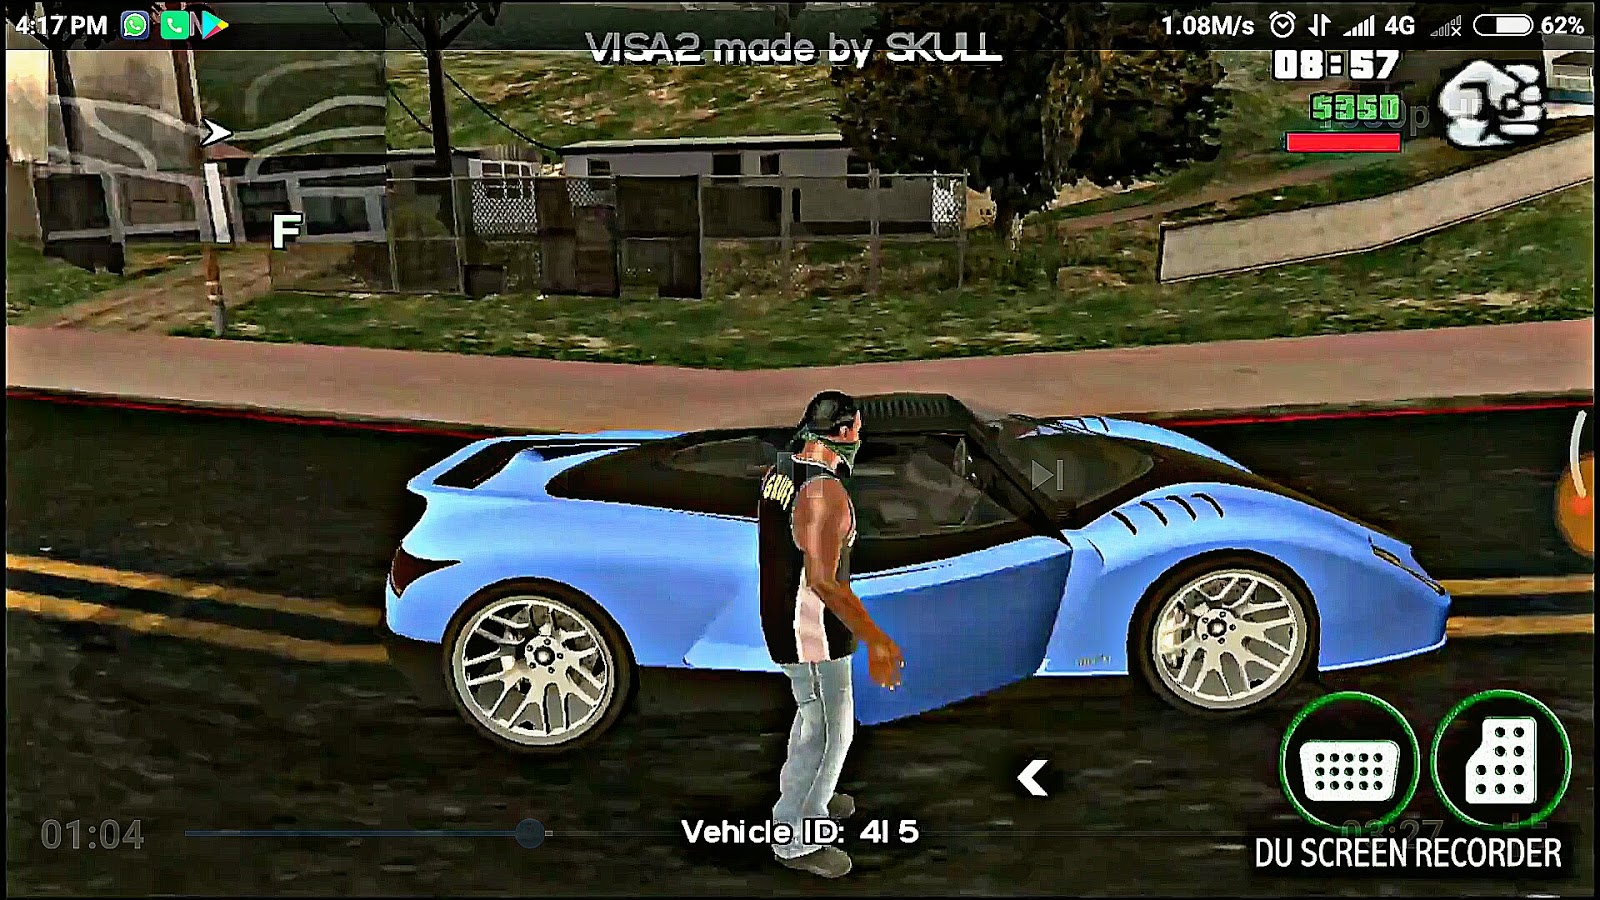 600MB] Download GTA 5 Visa 2 Mod For All Android Device